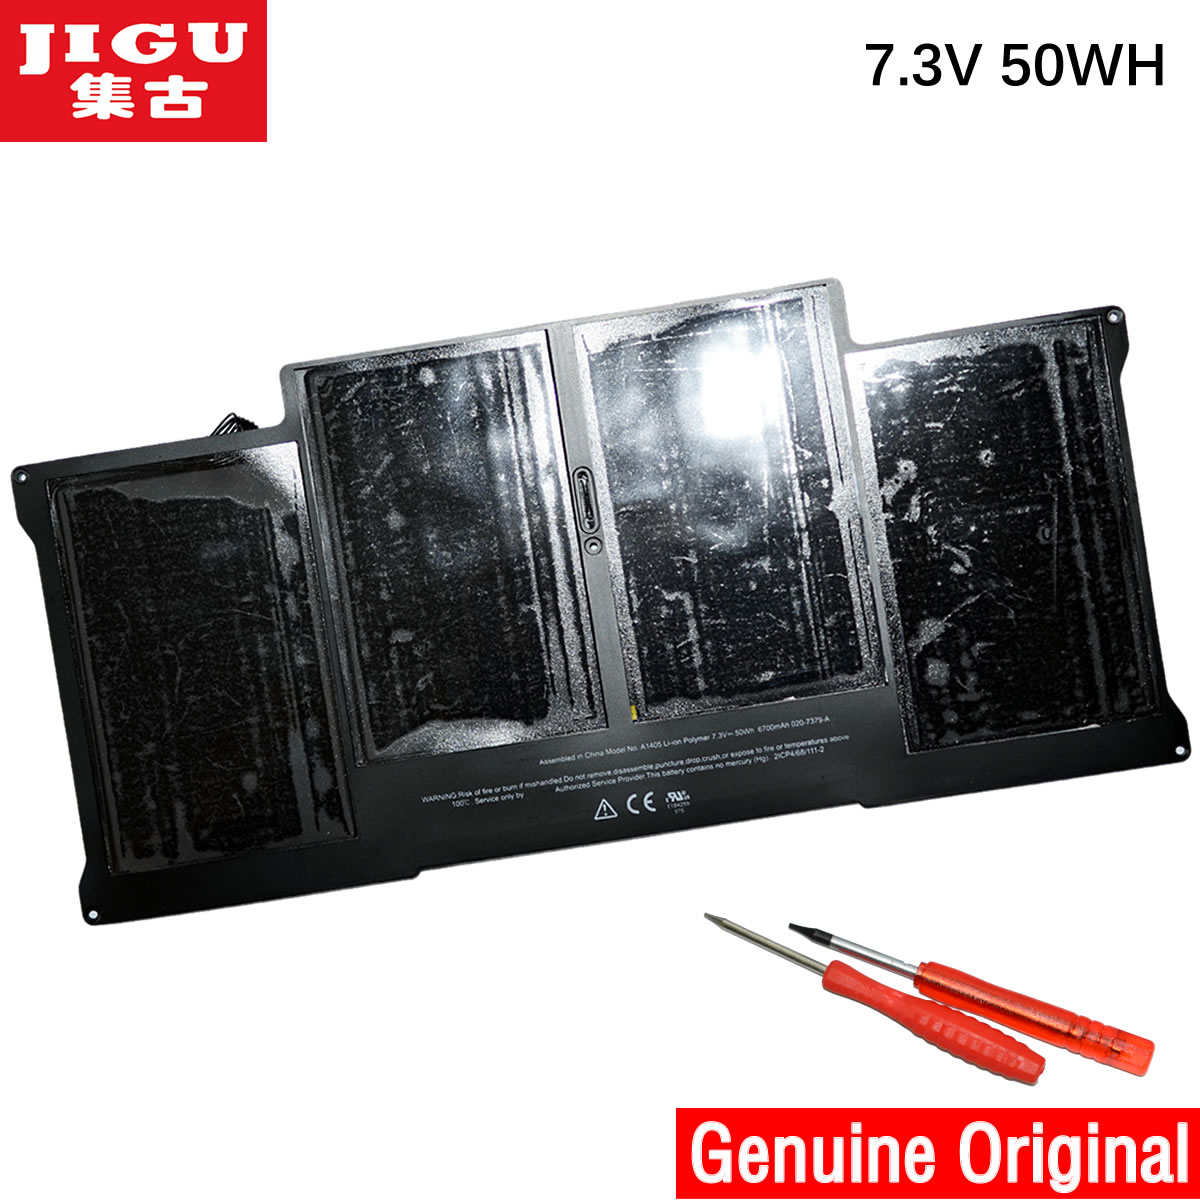 JIGU Original Genuine Battery A1405 For MacBook Air 13 A1369 Mid 2011 A1466 Mid 2012 hsw laptop battery for apple for macbook air core i7 1 8 13 a1369 mid 2011 a1405 a1466 2012 bateria akku